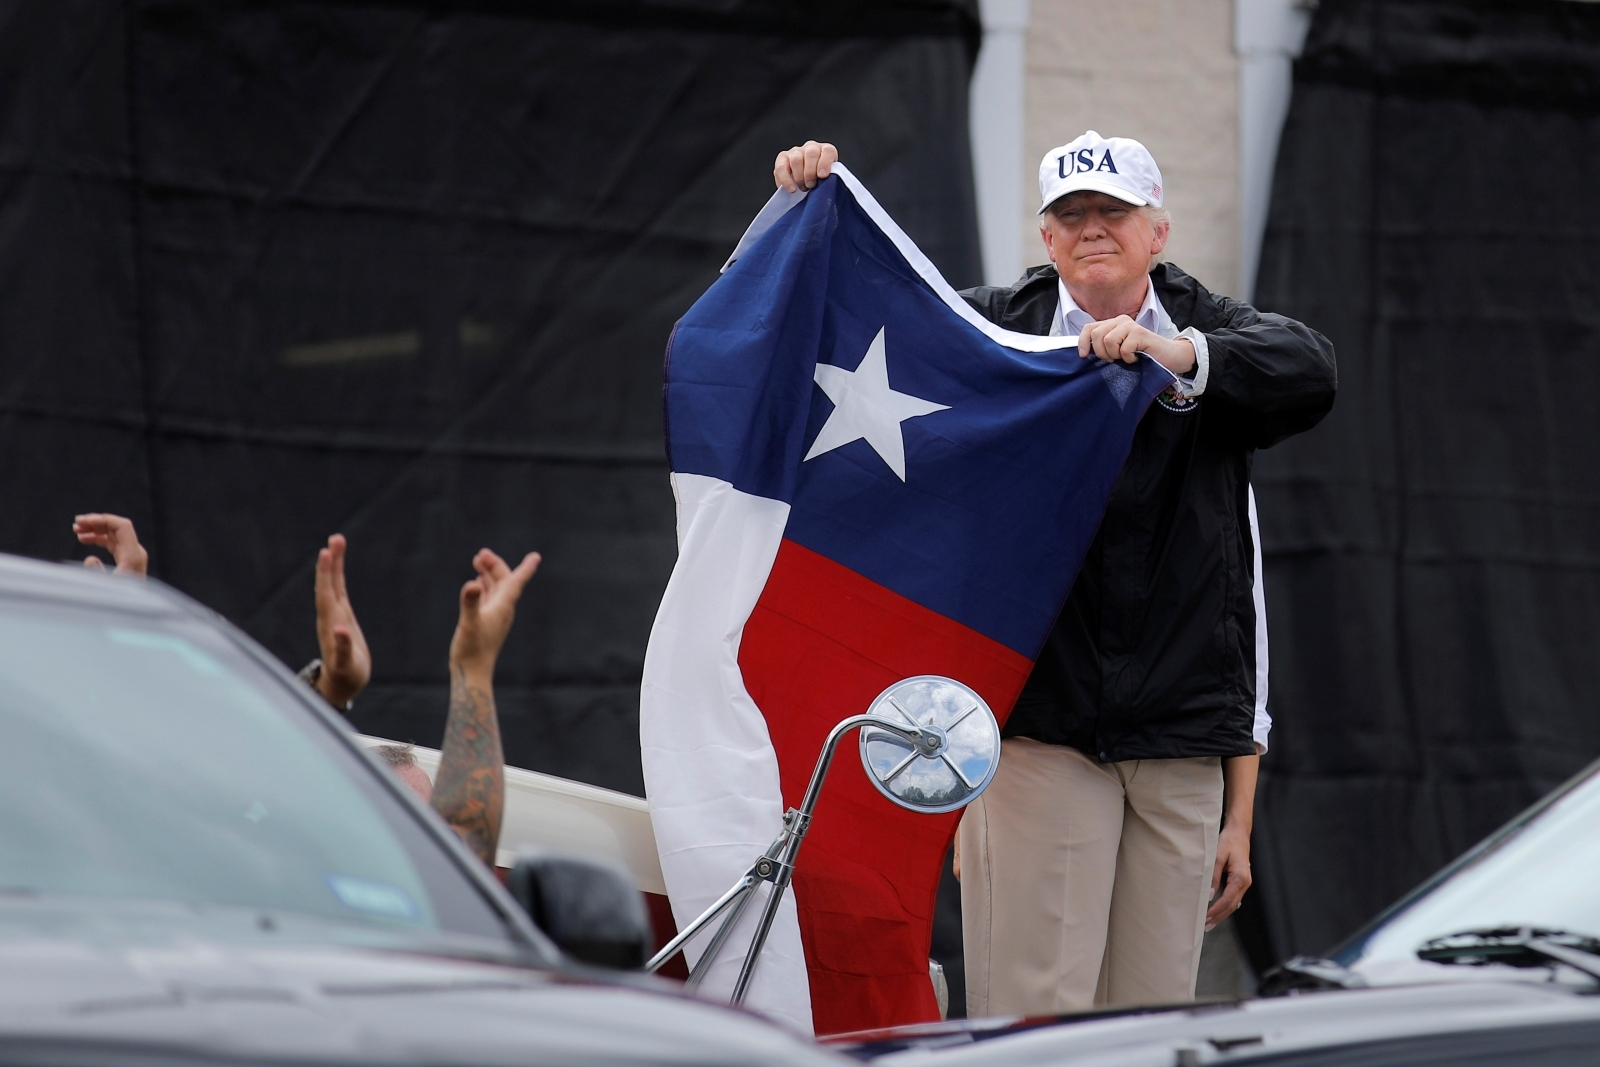 Donald Trump to visit Texas following devastating flooding